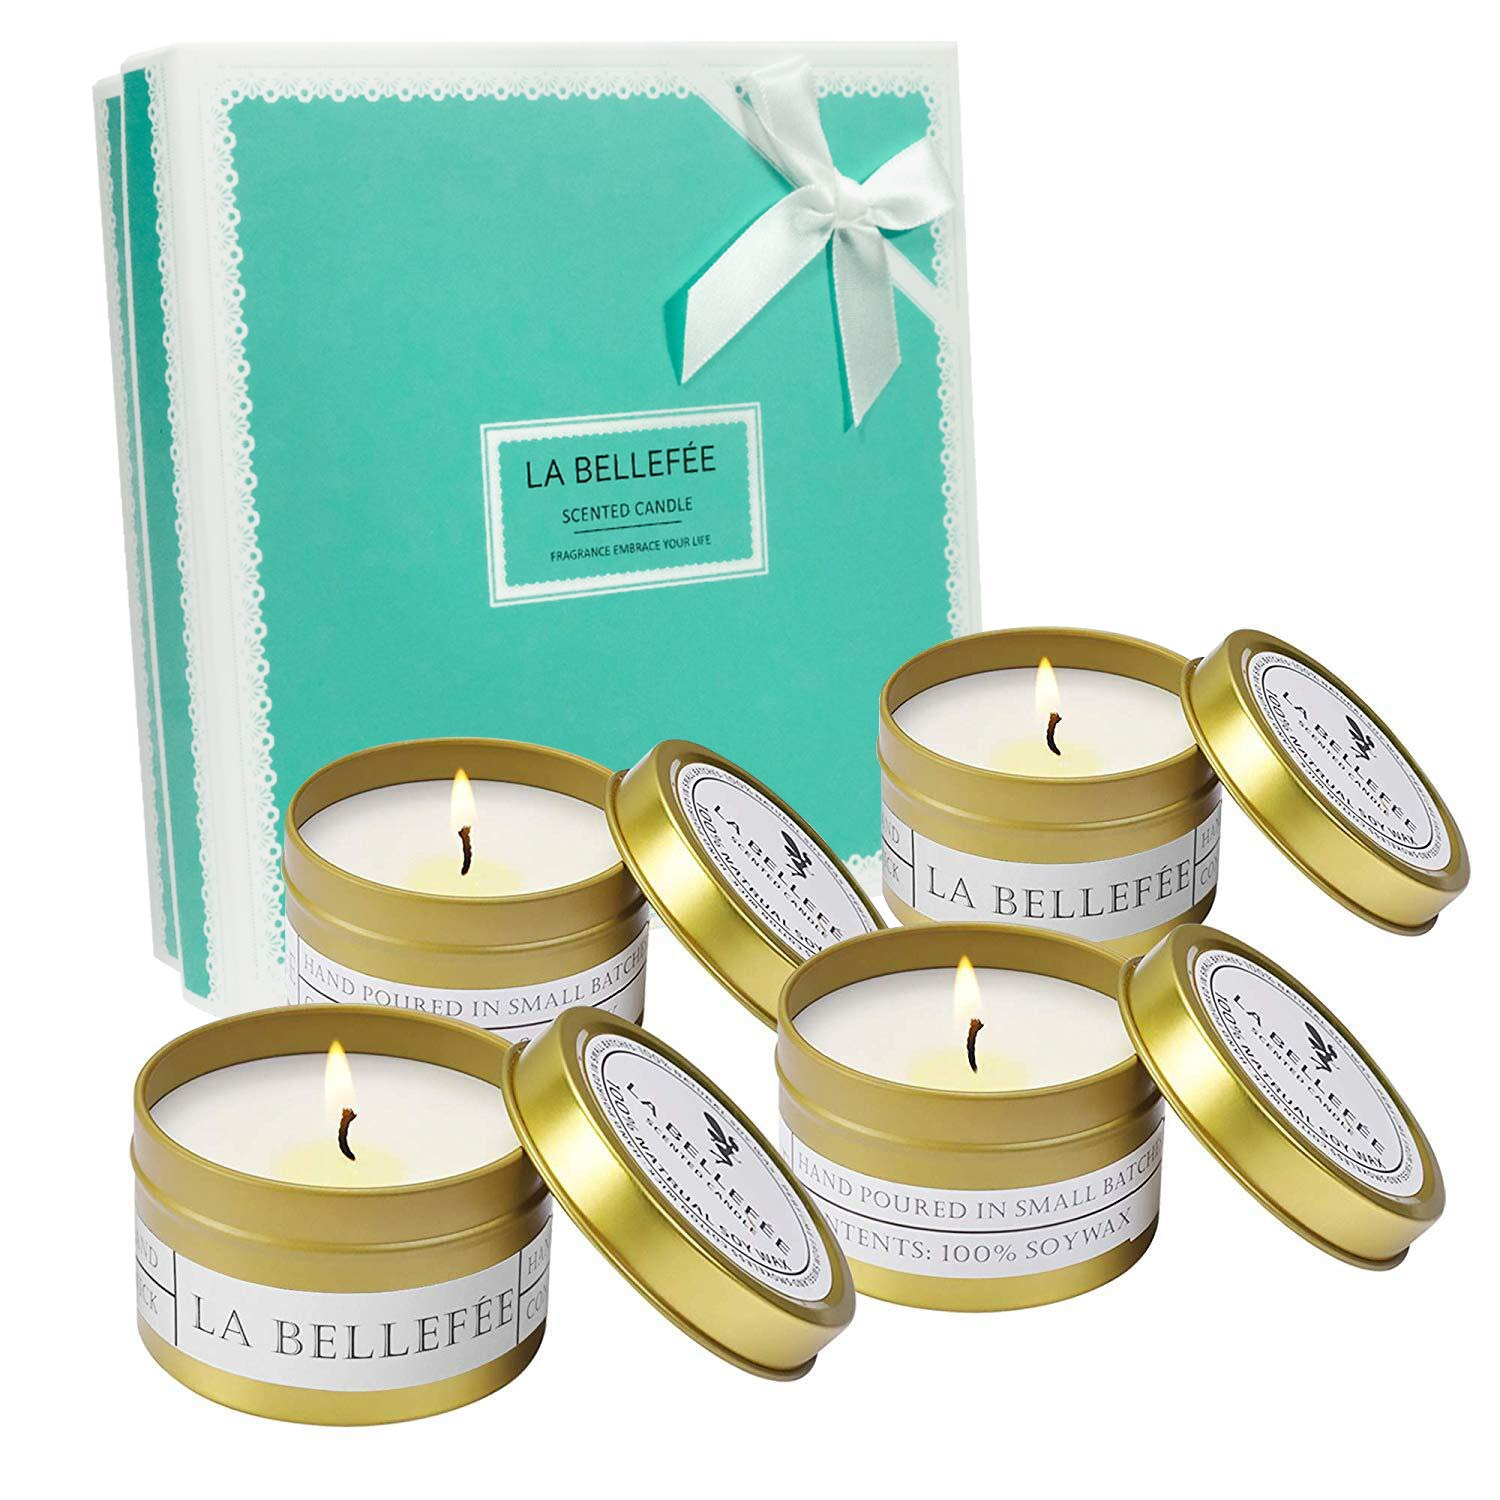 LA BELLEFÉE Scented Candle Soy Wax Travel Tin Aromatherapy Candles Gift Set for Wedding, Festival - Lemongrass Bergamot, Sea Salt Sage, French Lavender Vanilla, Mediterranean Amber - 4 Pack